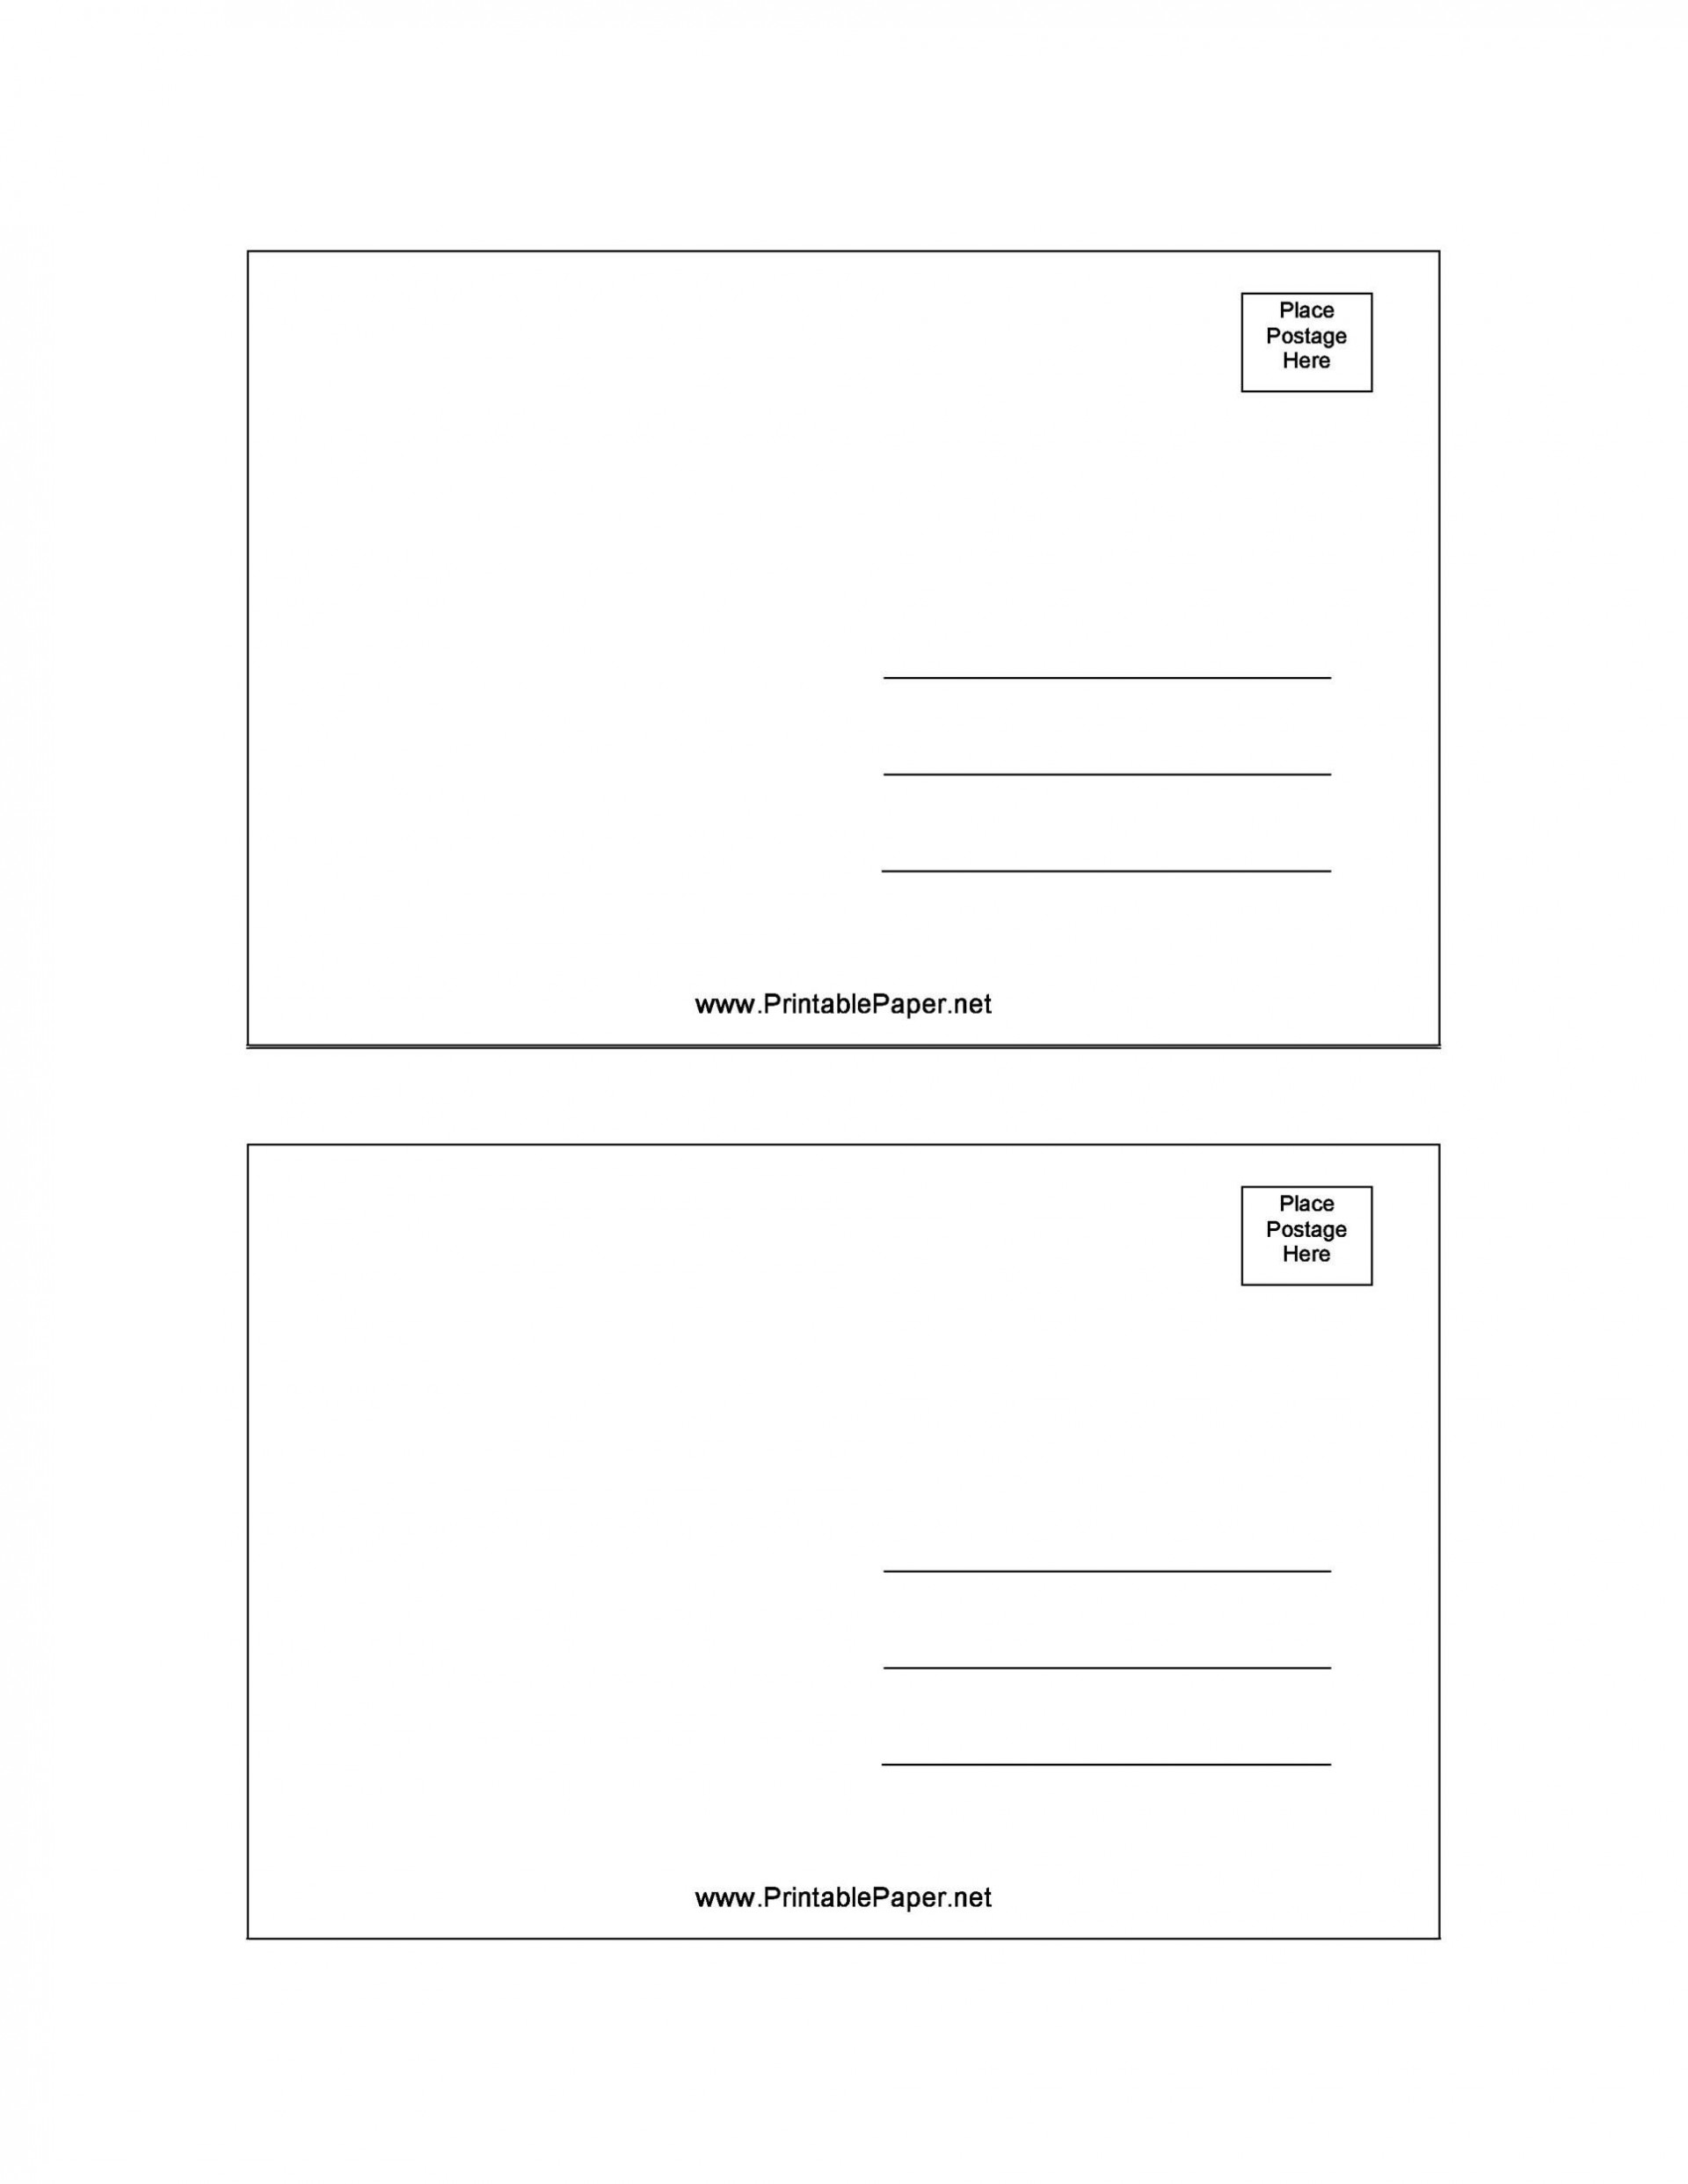 007 Amazing Free Postcard Template Download Microsoft Word High Definition 1920